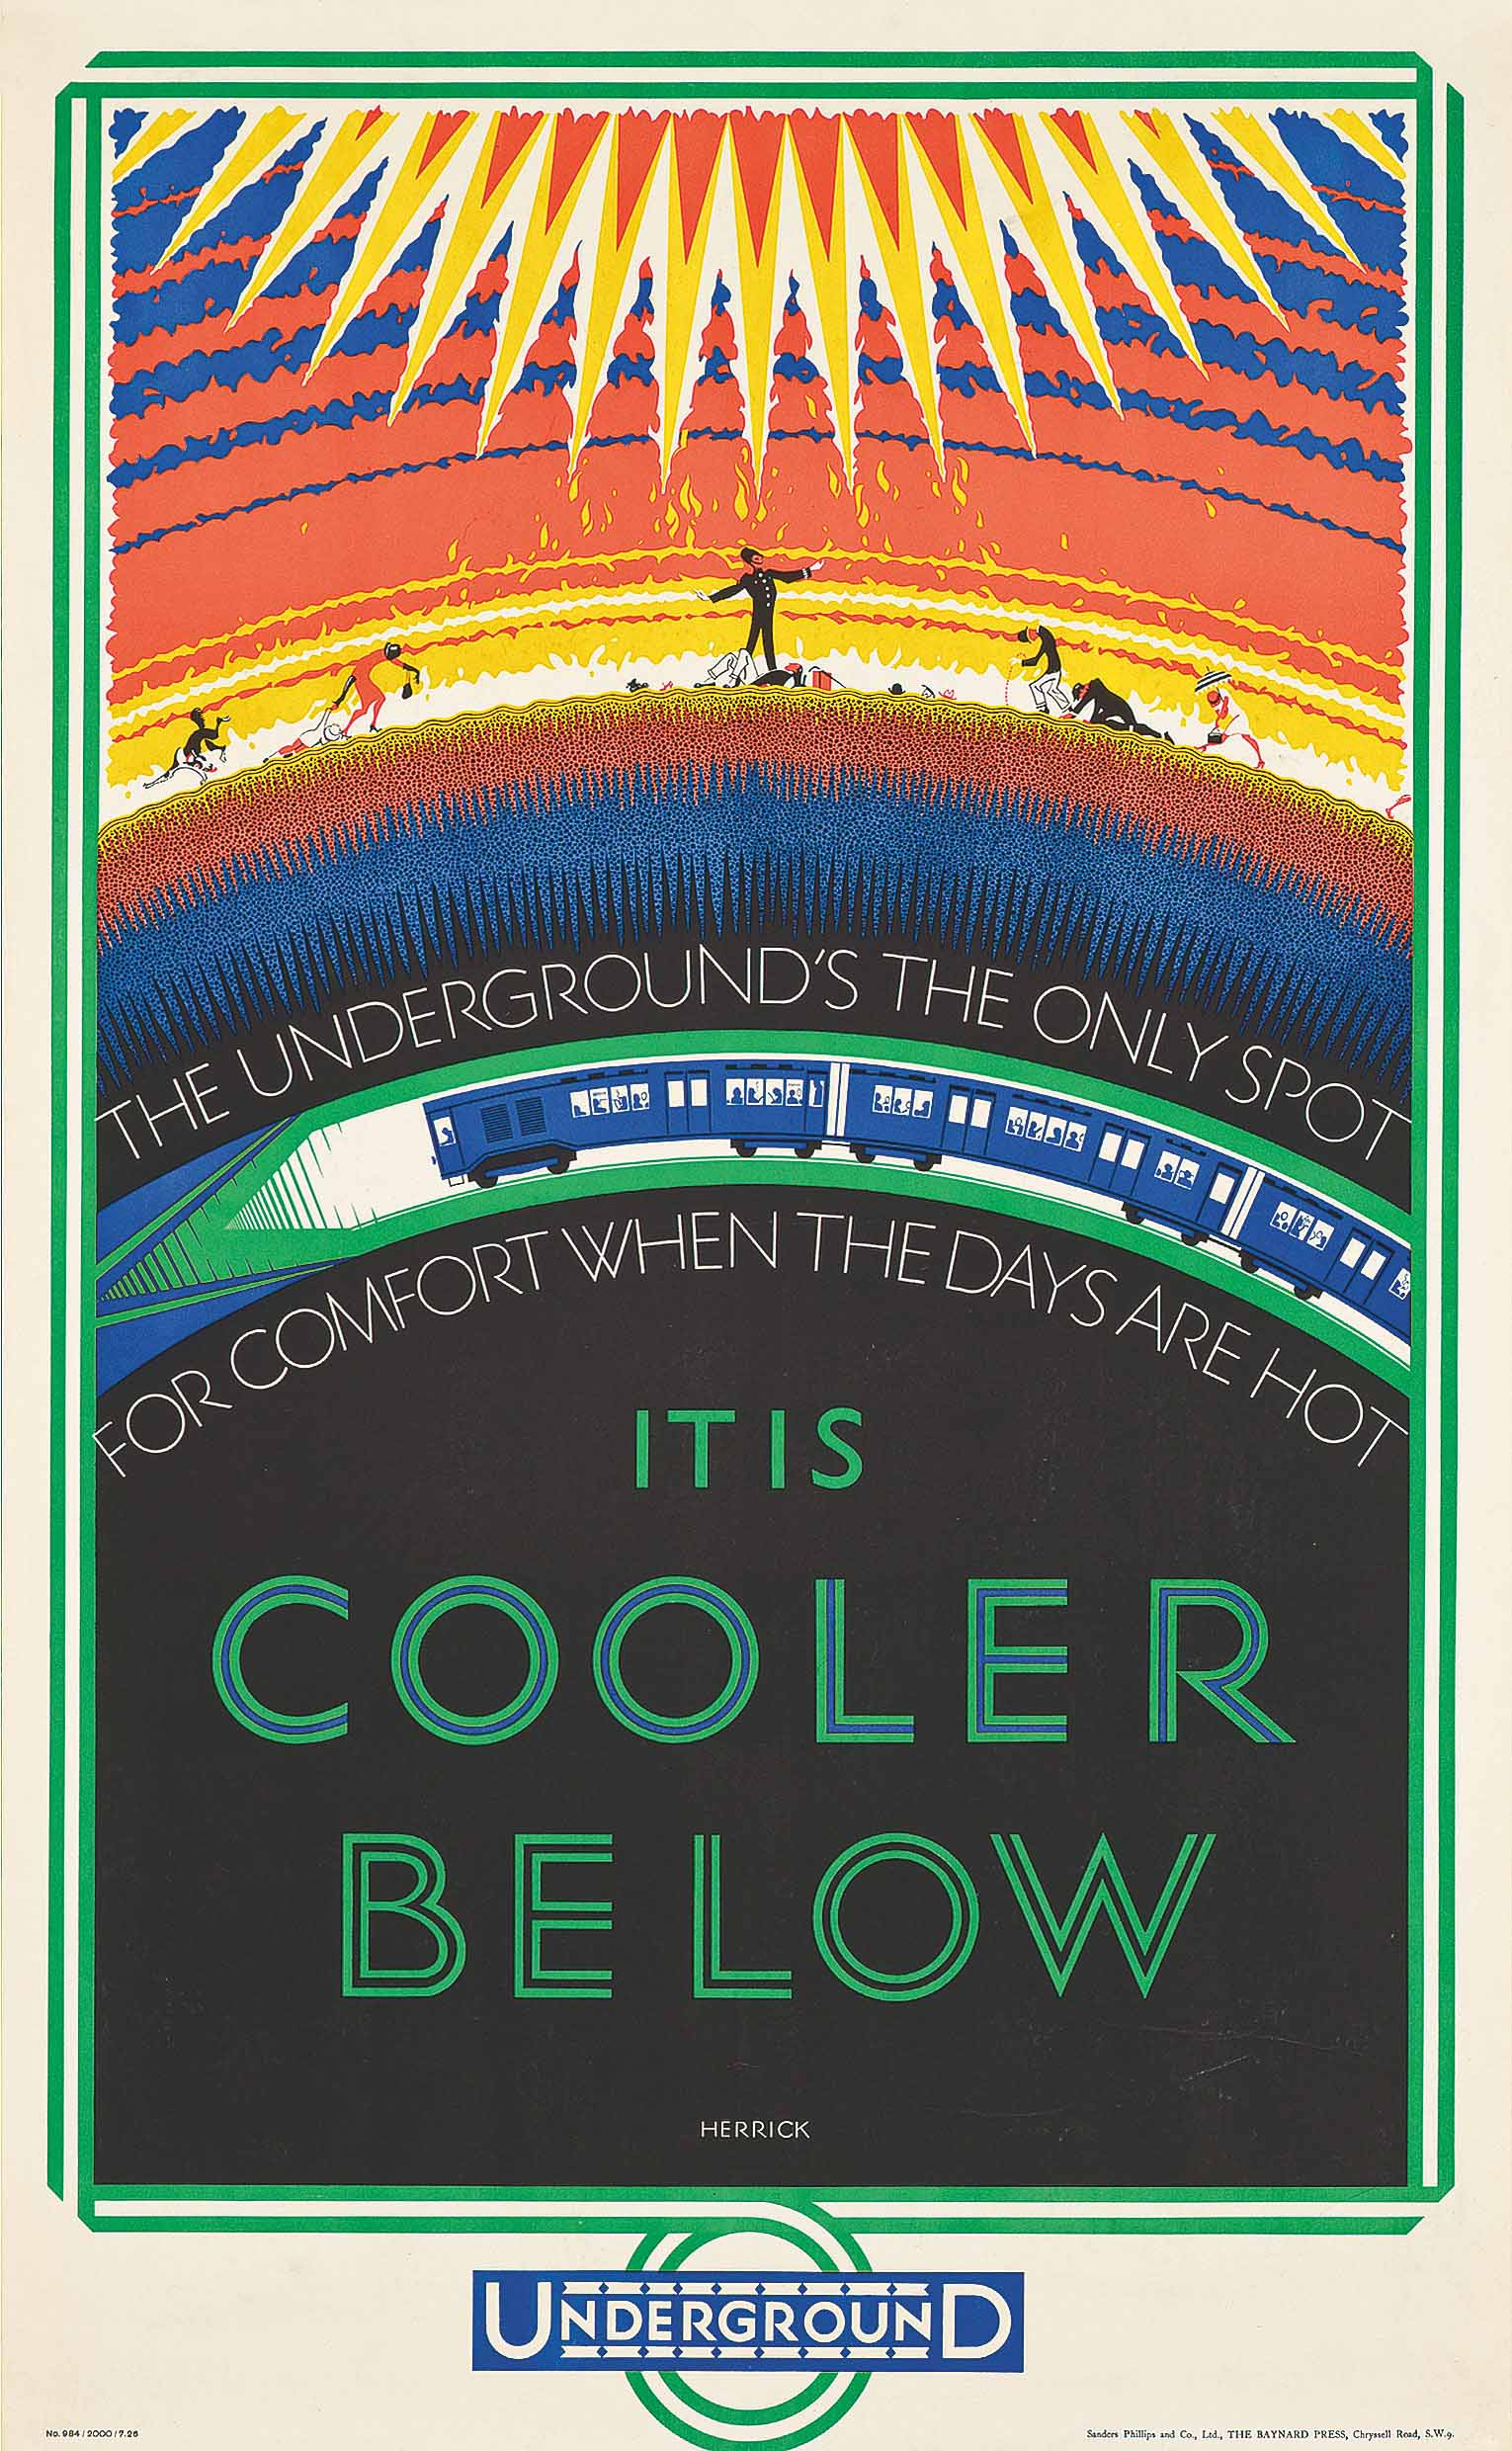 IT IS COOLER BELOW